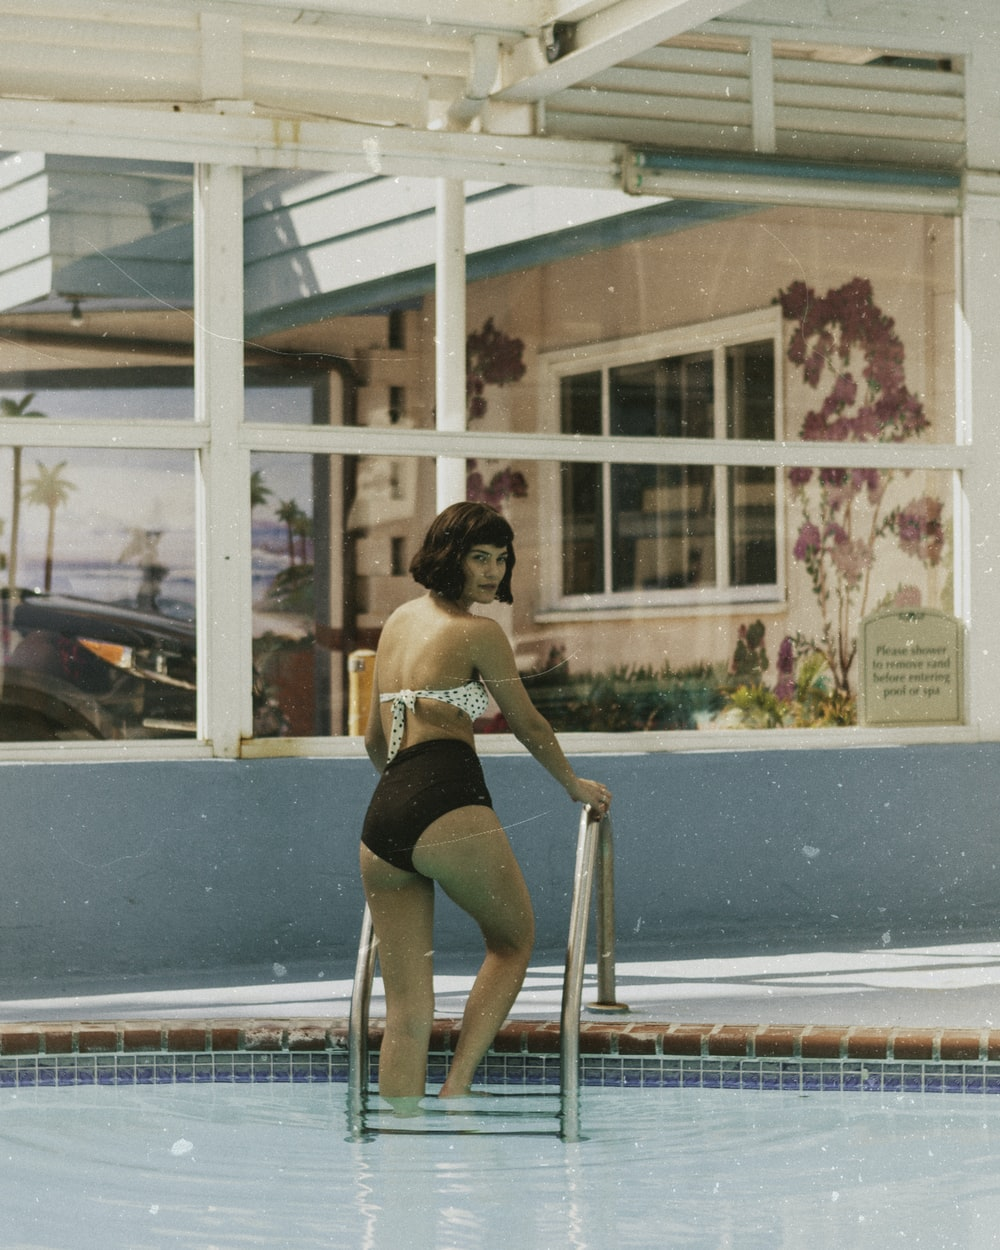 woman standing on pool ladder at daytime